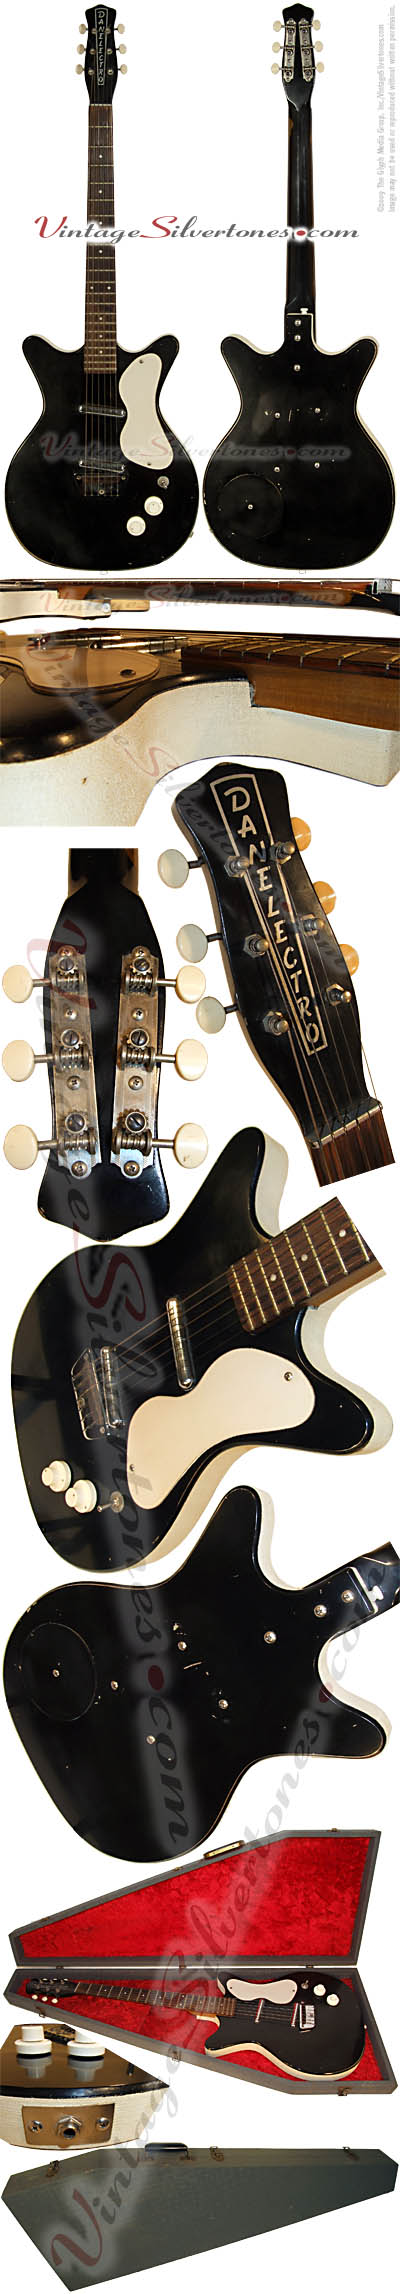 Danelectro Standard 3021, semi-hollow body, electric guitar with 2 pickups in black 1959